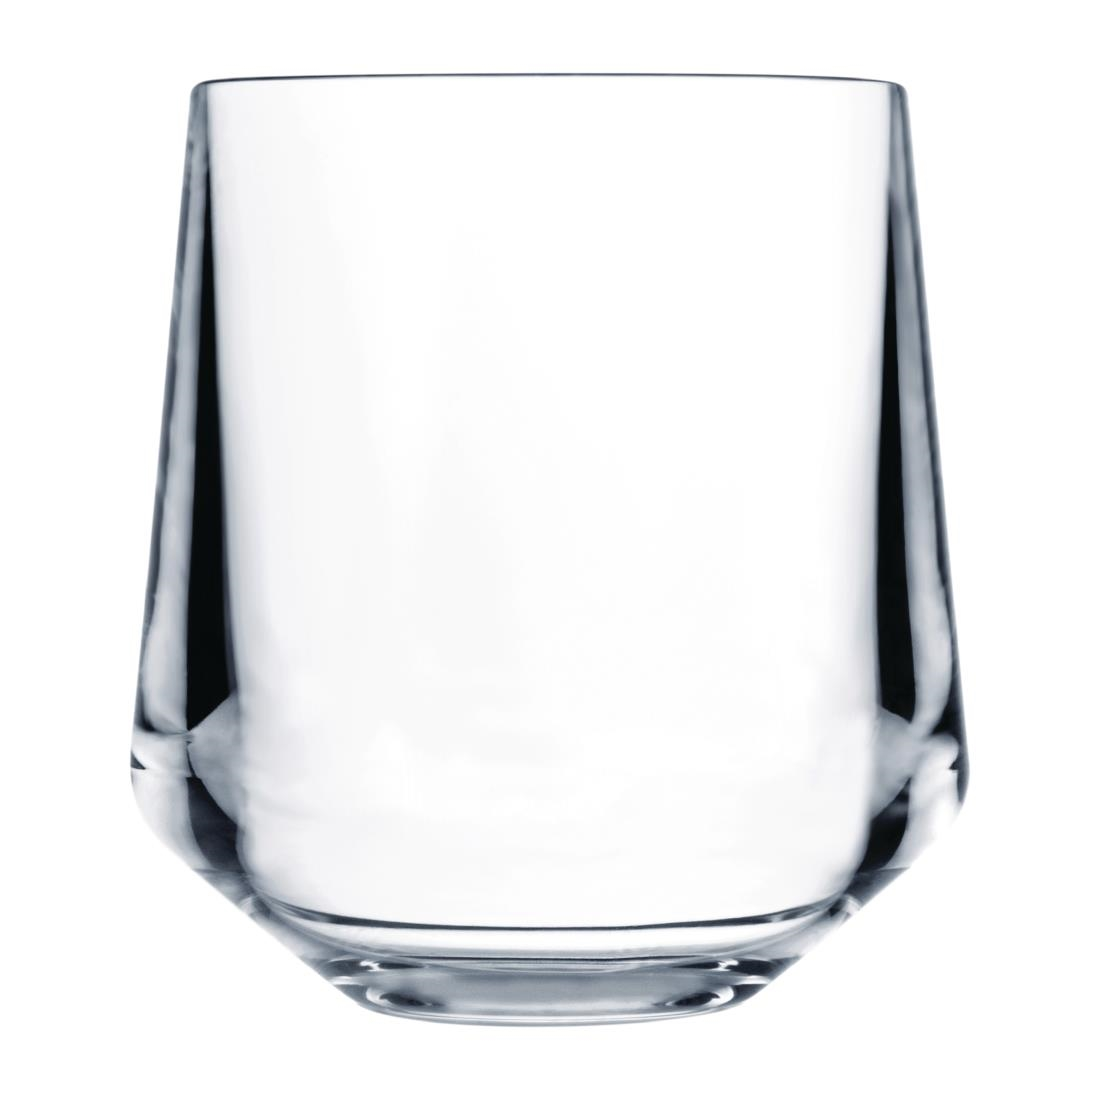 Image of Drinique Elite Tritan Stemless Wine Glasses Clear 340ml (Pack of 24) Pack of 24